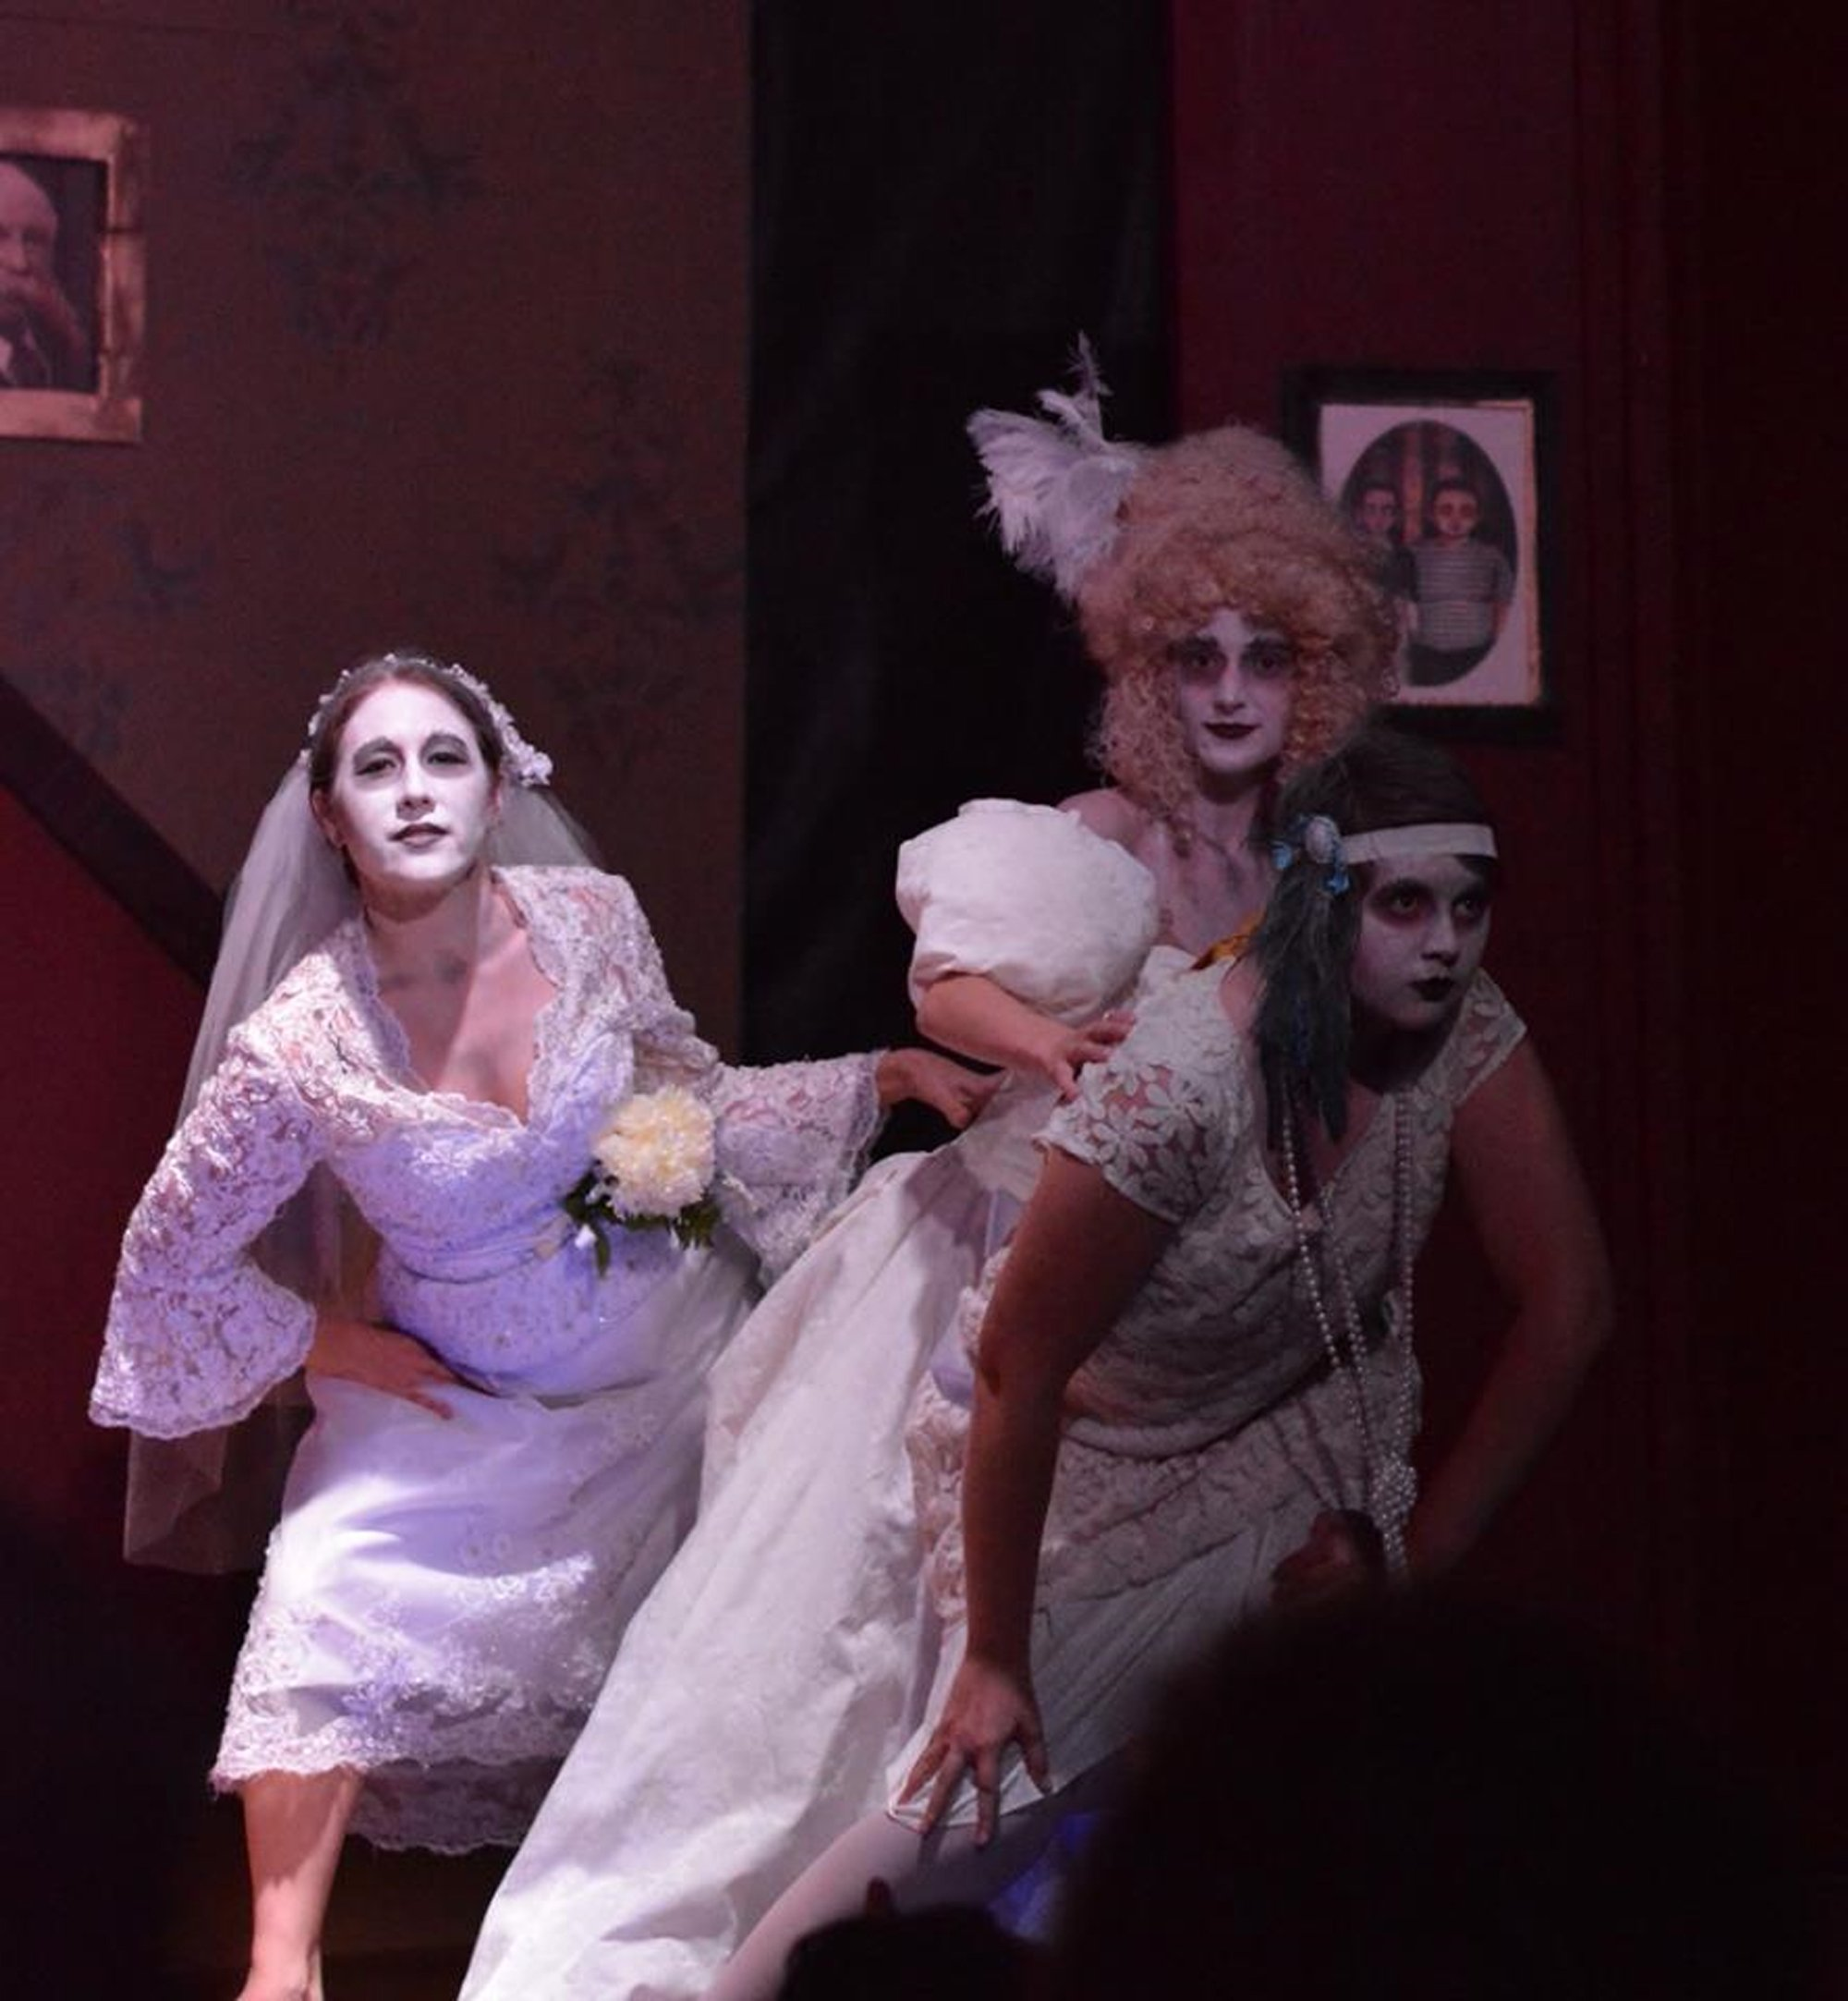 """The Ancestors, part of the Cast of our Community Theater production of """"The Addams Family"""" presented at the RFA Lakeside Theater in August 2016."""